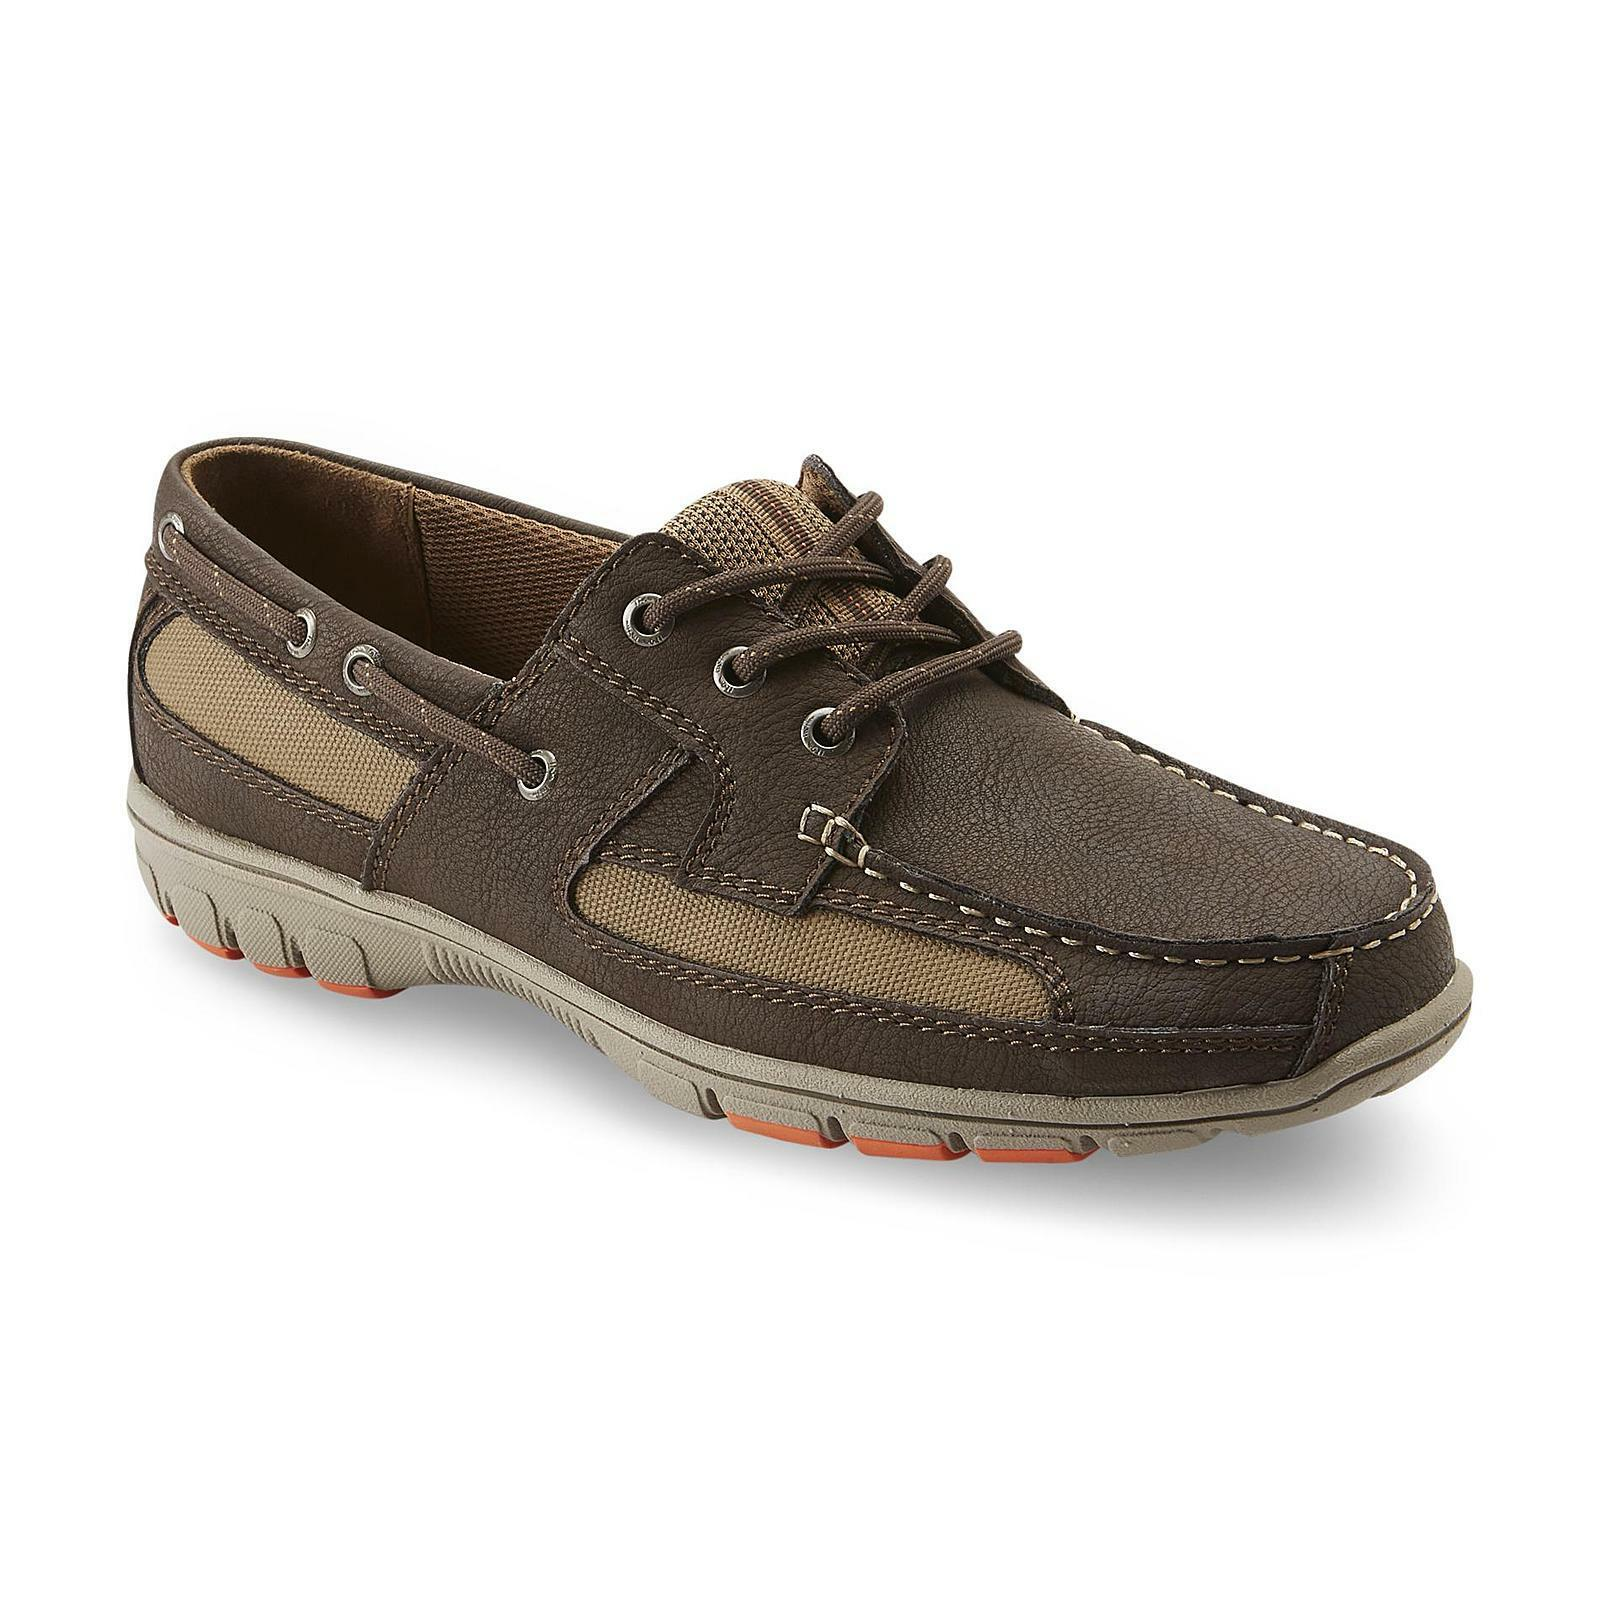 Thom McAn Men's Kiel Brown Tan Casual Lace-Up  Boat shoes